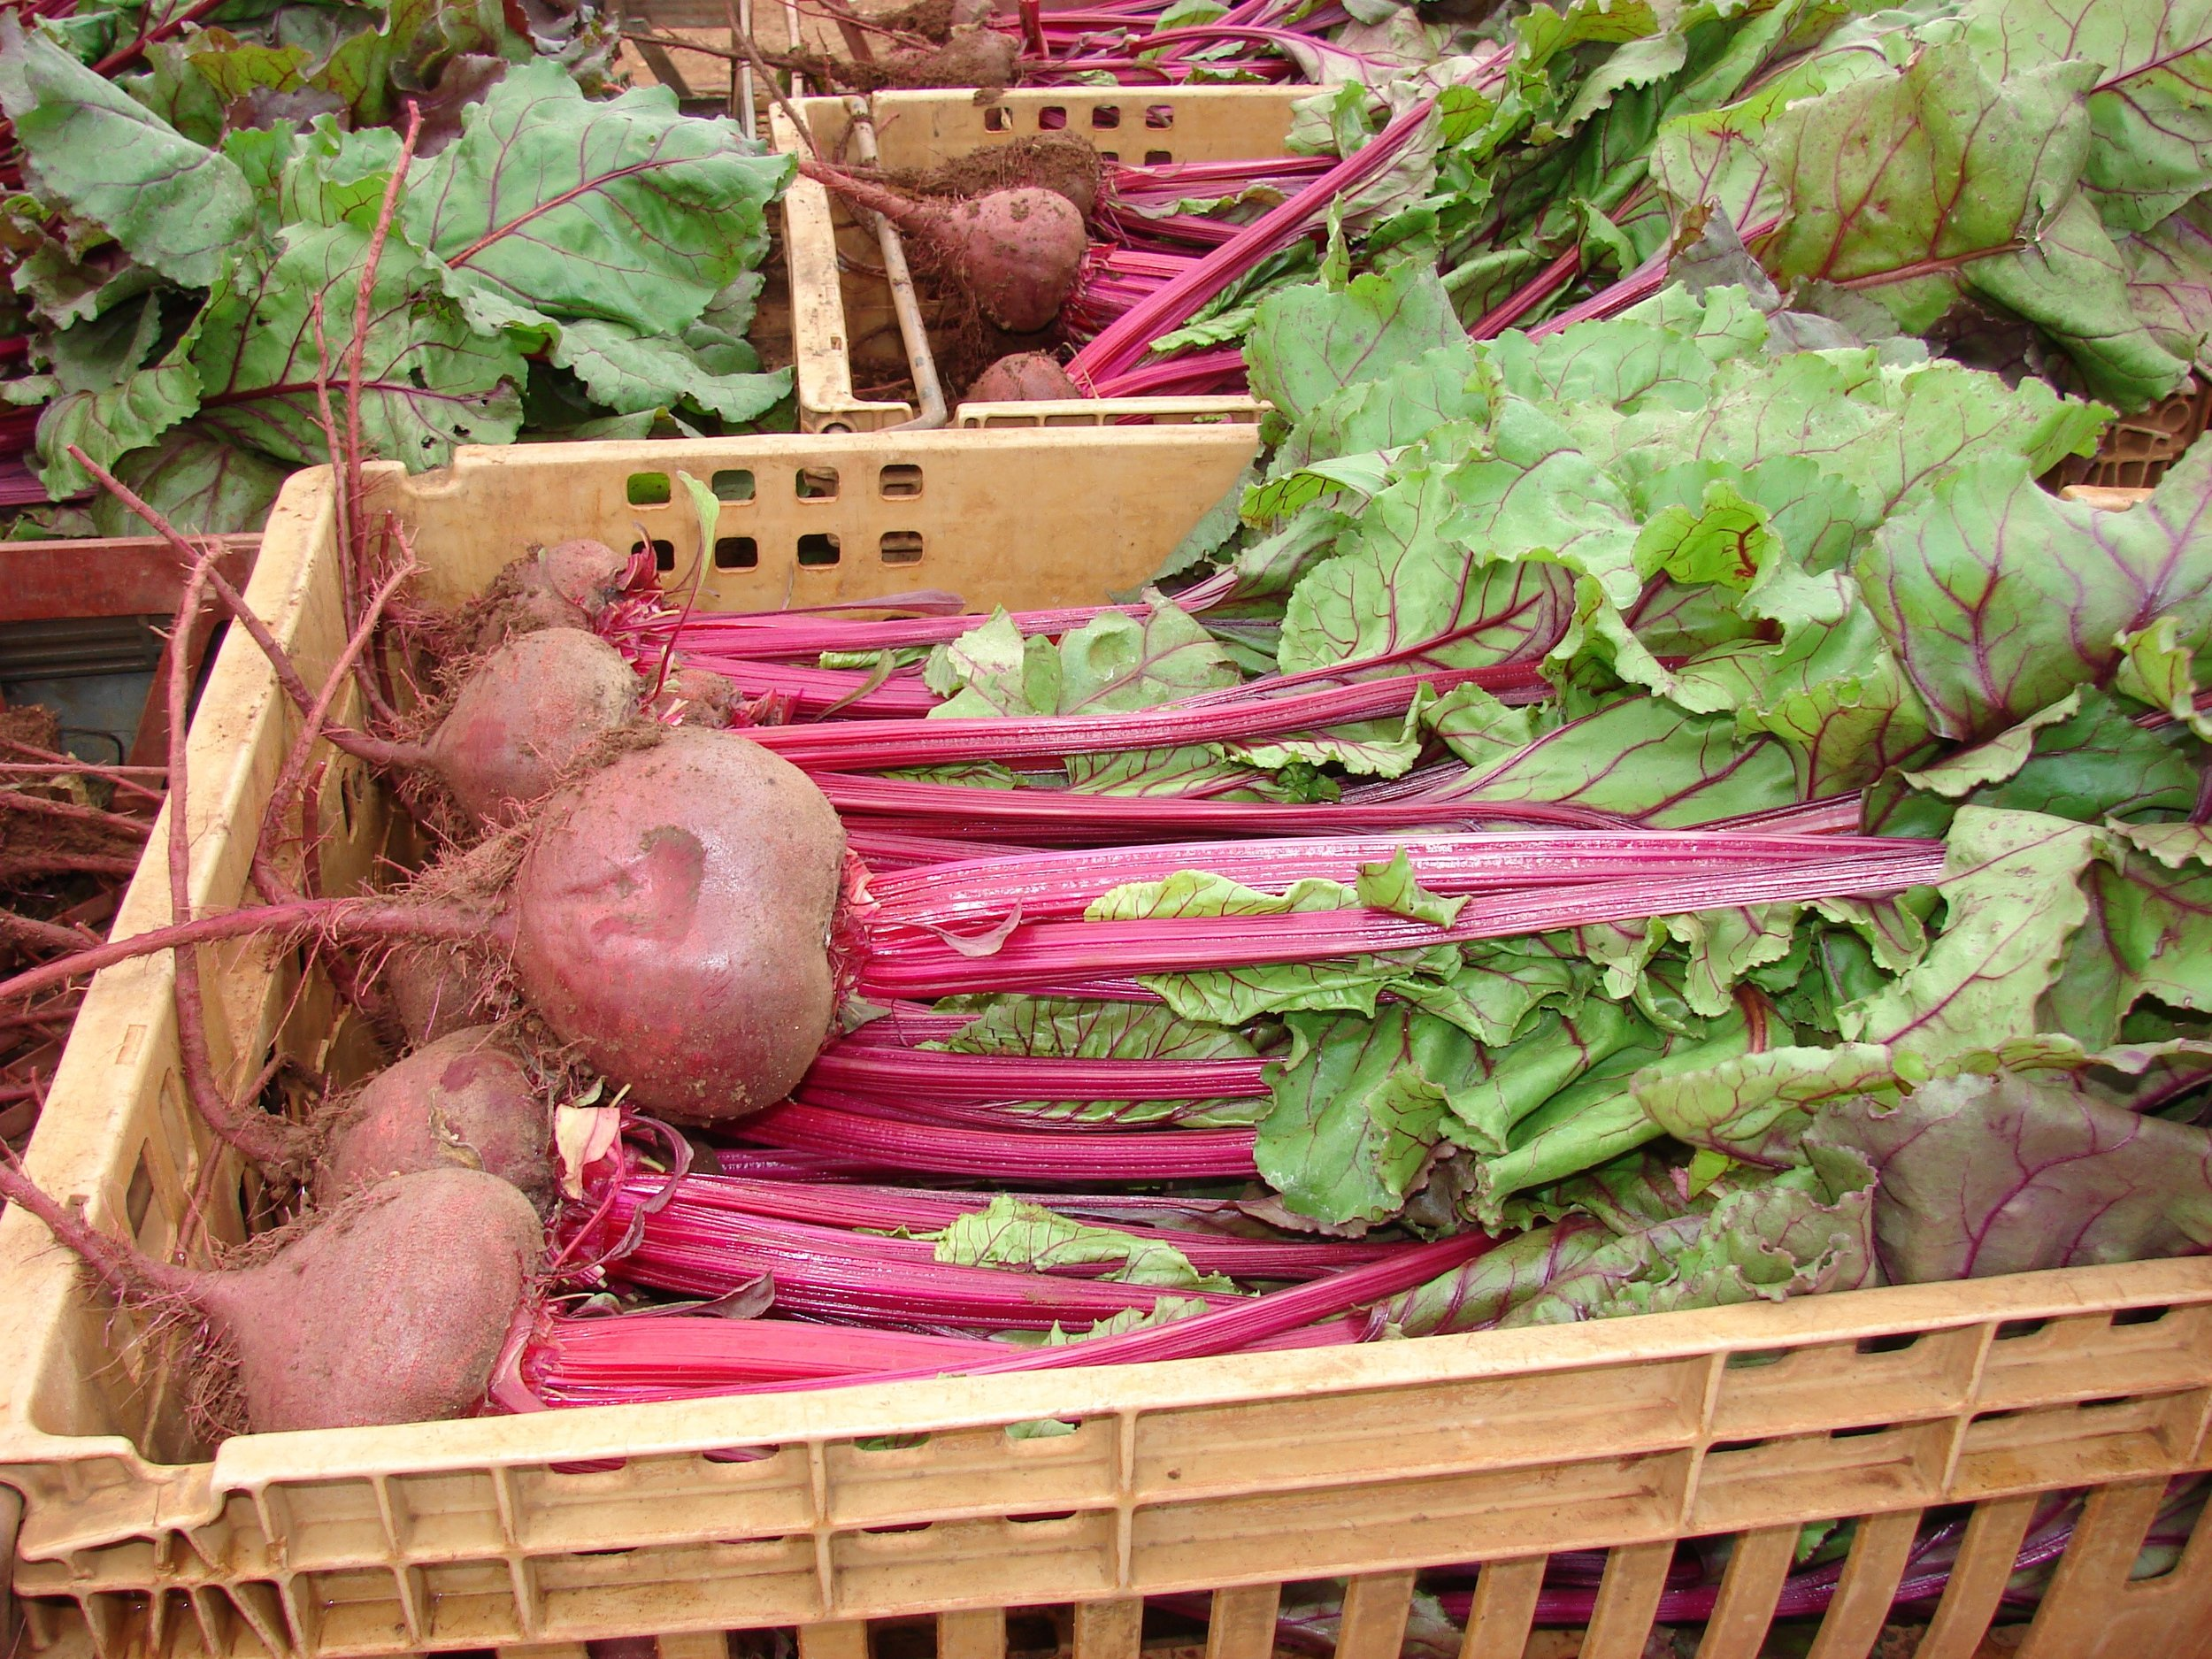 Here is a close up of freshly harvested Beets grown with weekly applications of EM•1®.